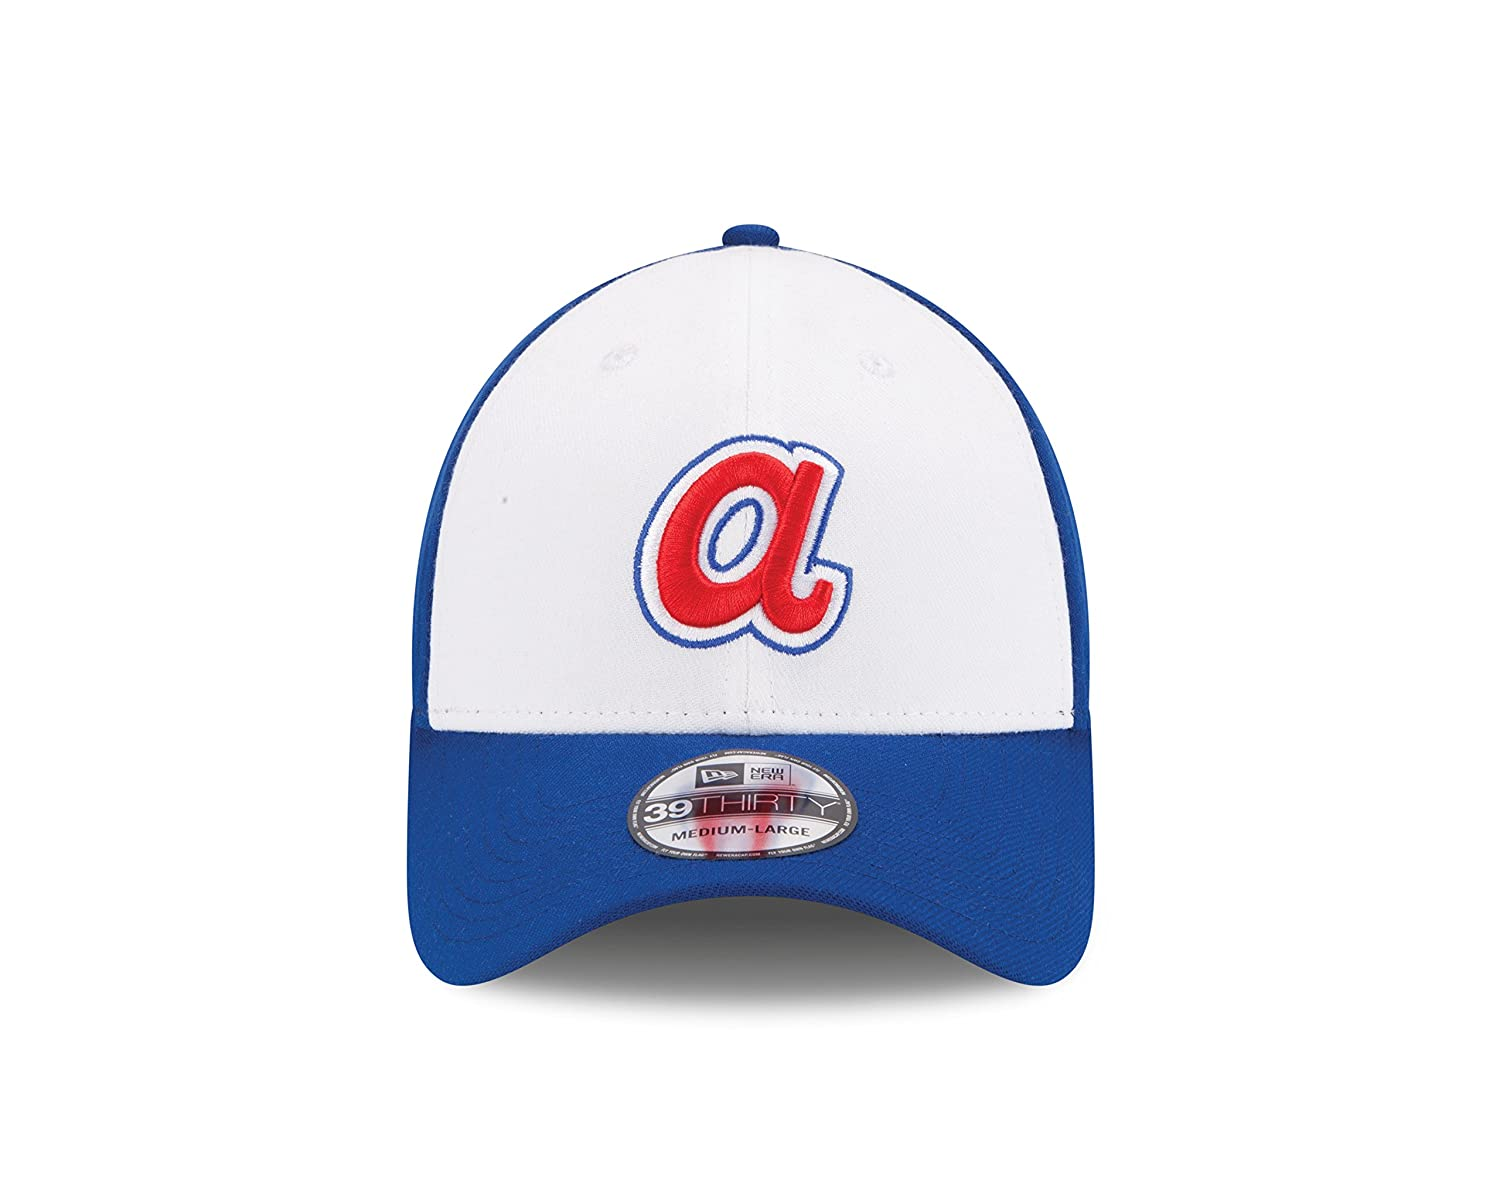 cb0be0a72a1 Amazon.com   New Era MLB Cooperstown Team Classic 39THIRTY Stretch Fit Cap    Sports   Outdoors